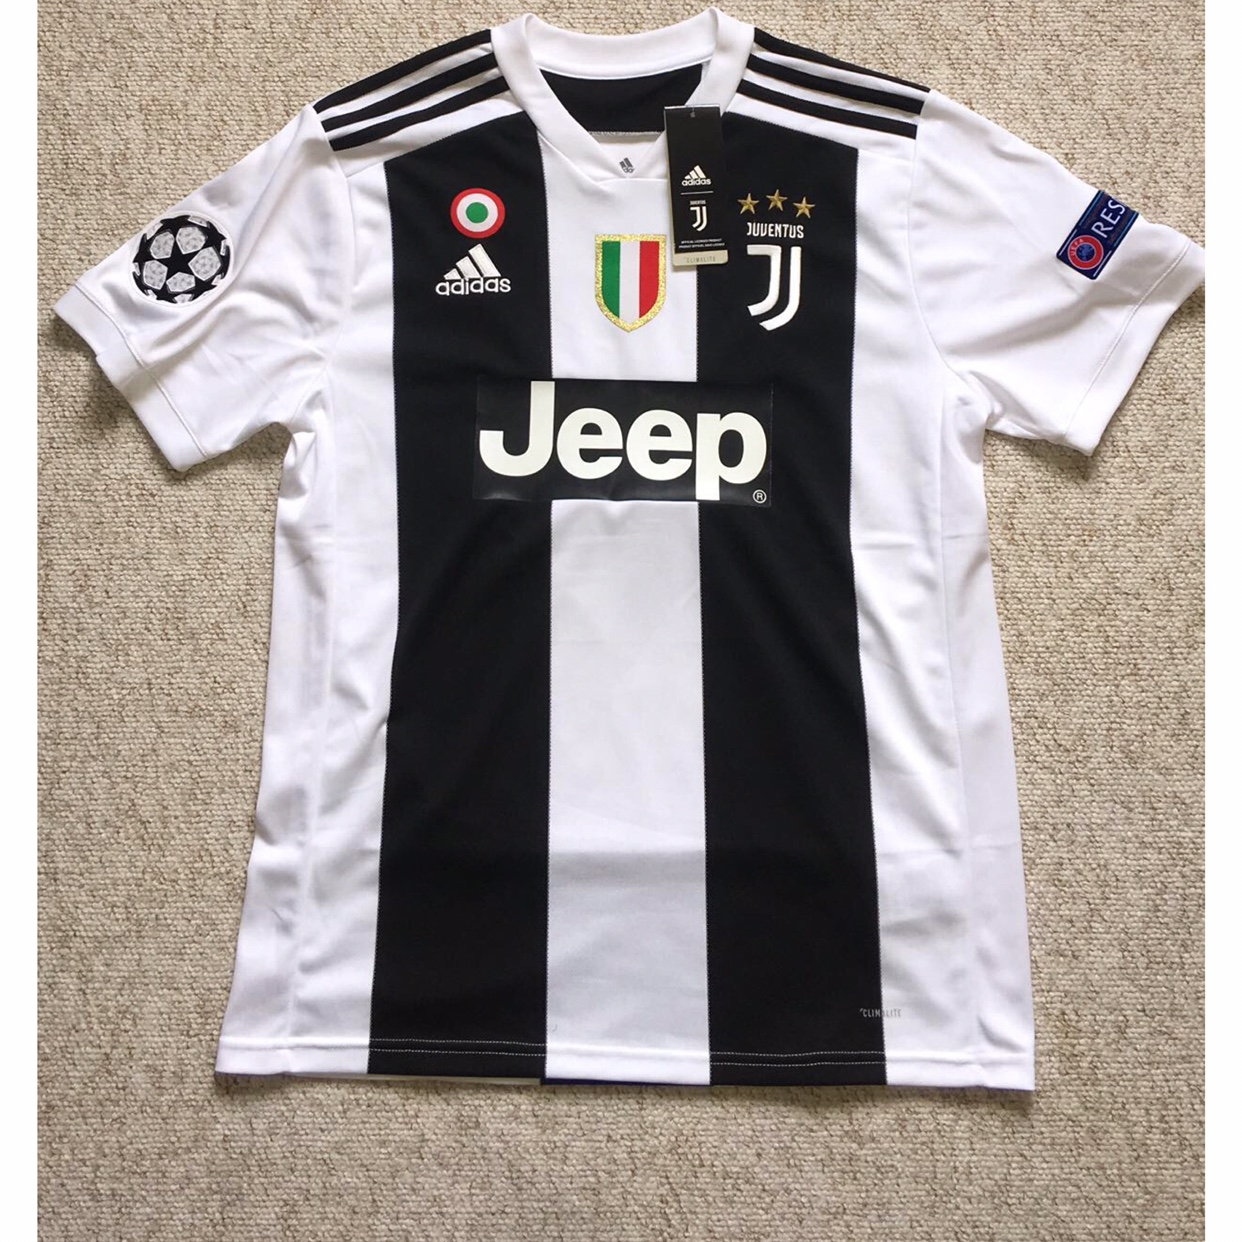 sports shoes 7bb16 56f31 JUVENTUS HOME KIT 2018/19 RONALDO 7 10/10 WITH... - Depop